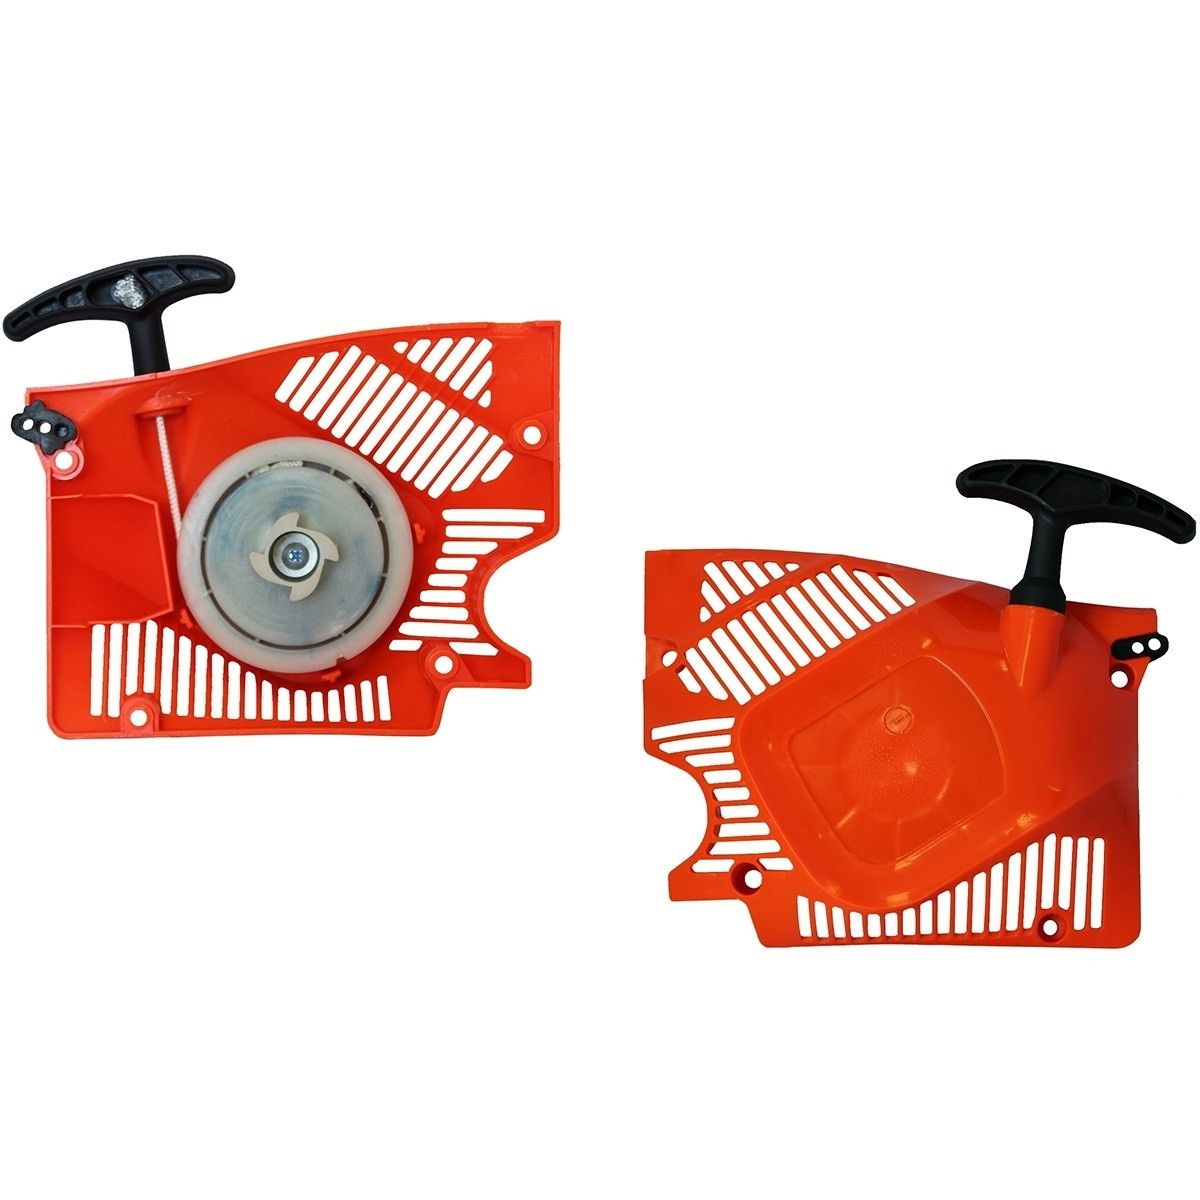 Orange Color Compatibilitythis Recoil Fits All The Following Brands Of 62cc Chainsaws Timber Selling On Pinterest Orange Color Selling On Instagram